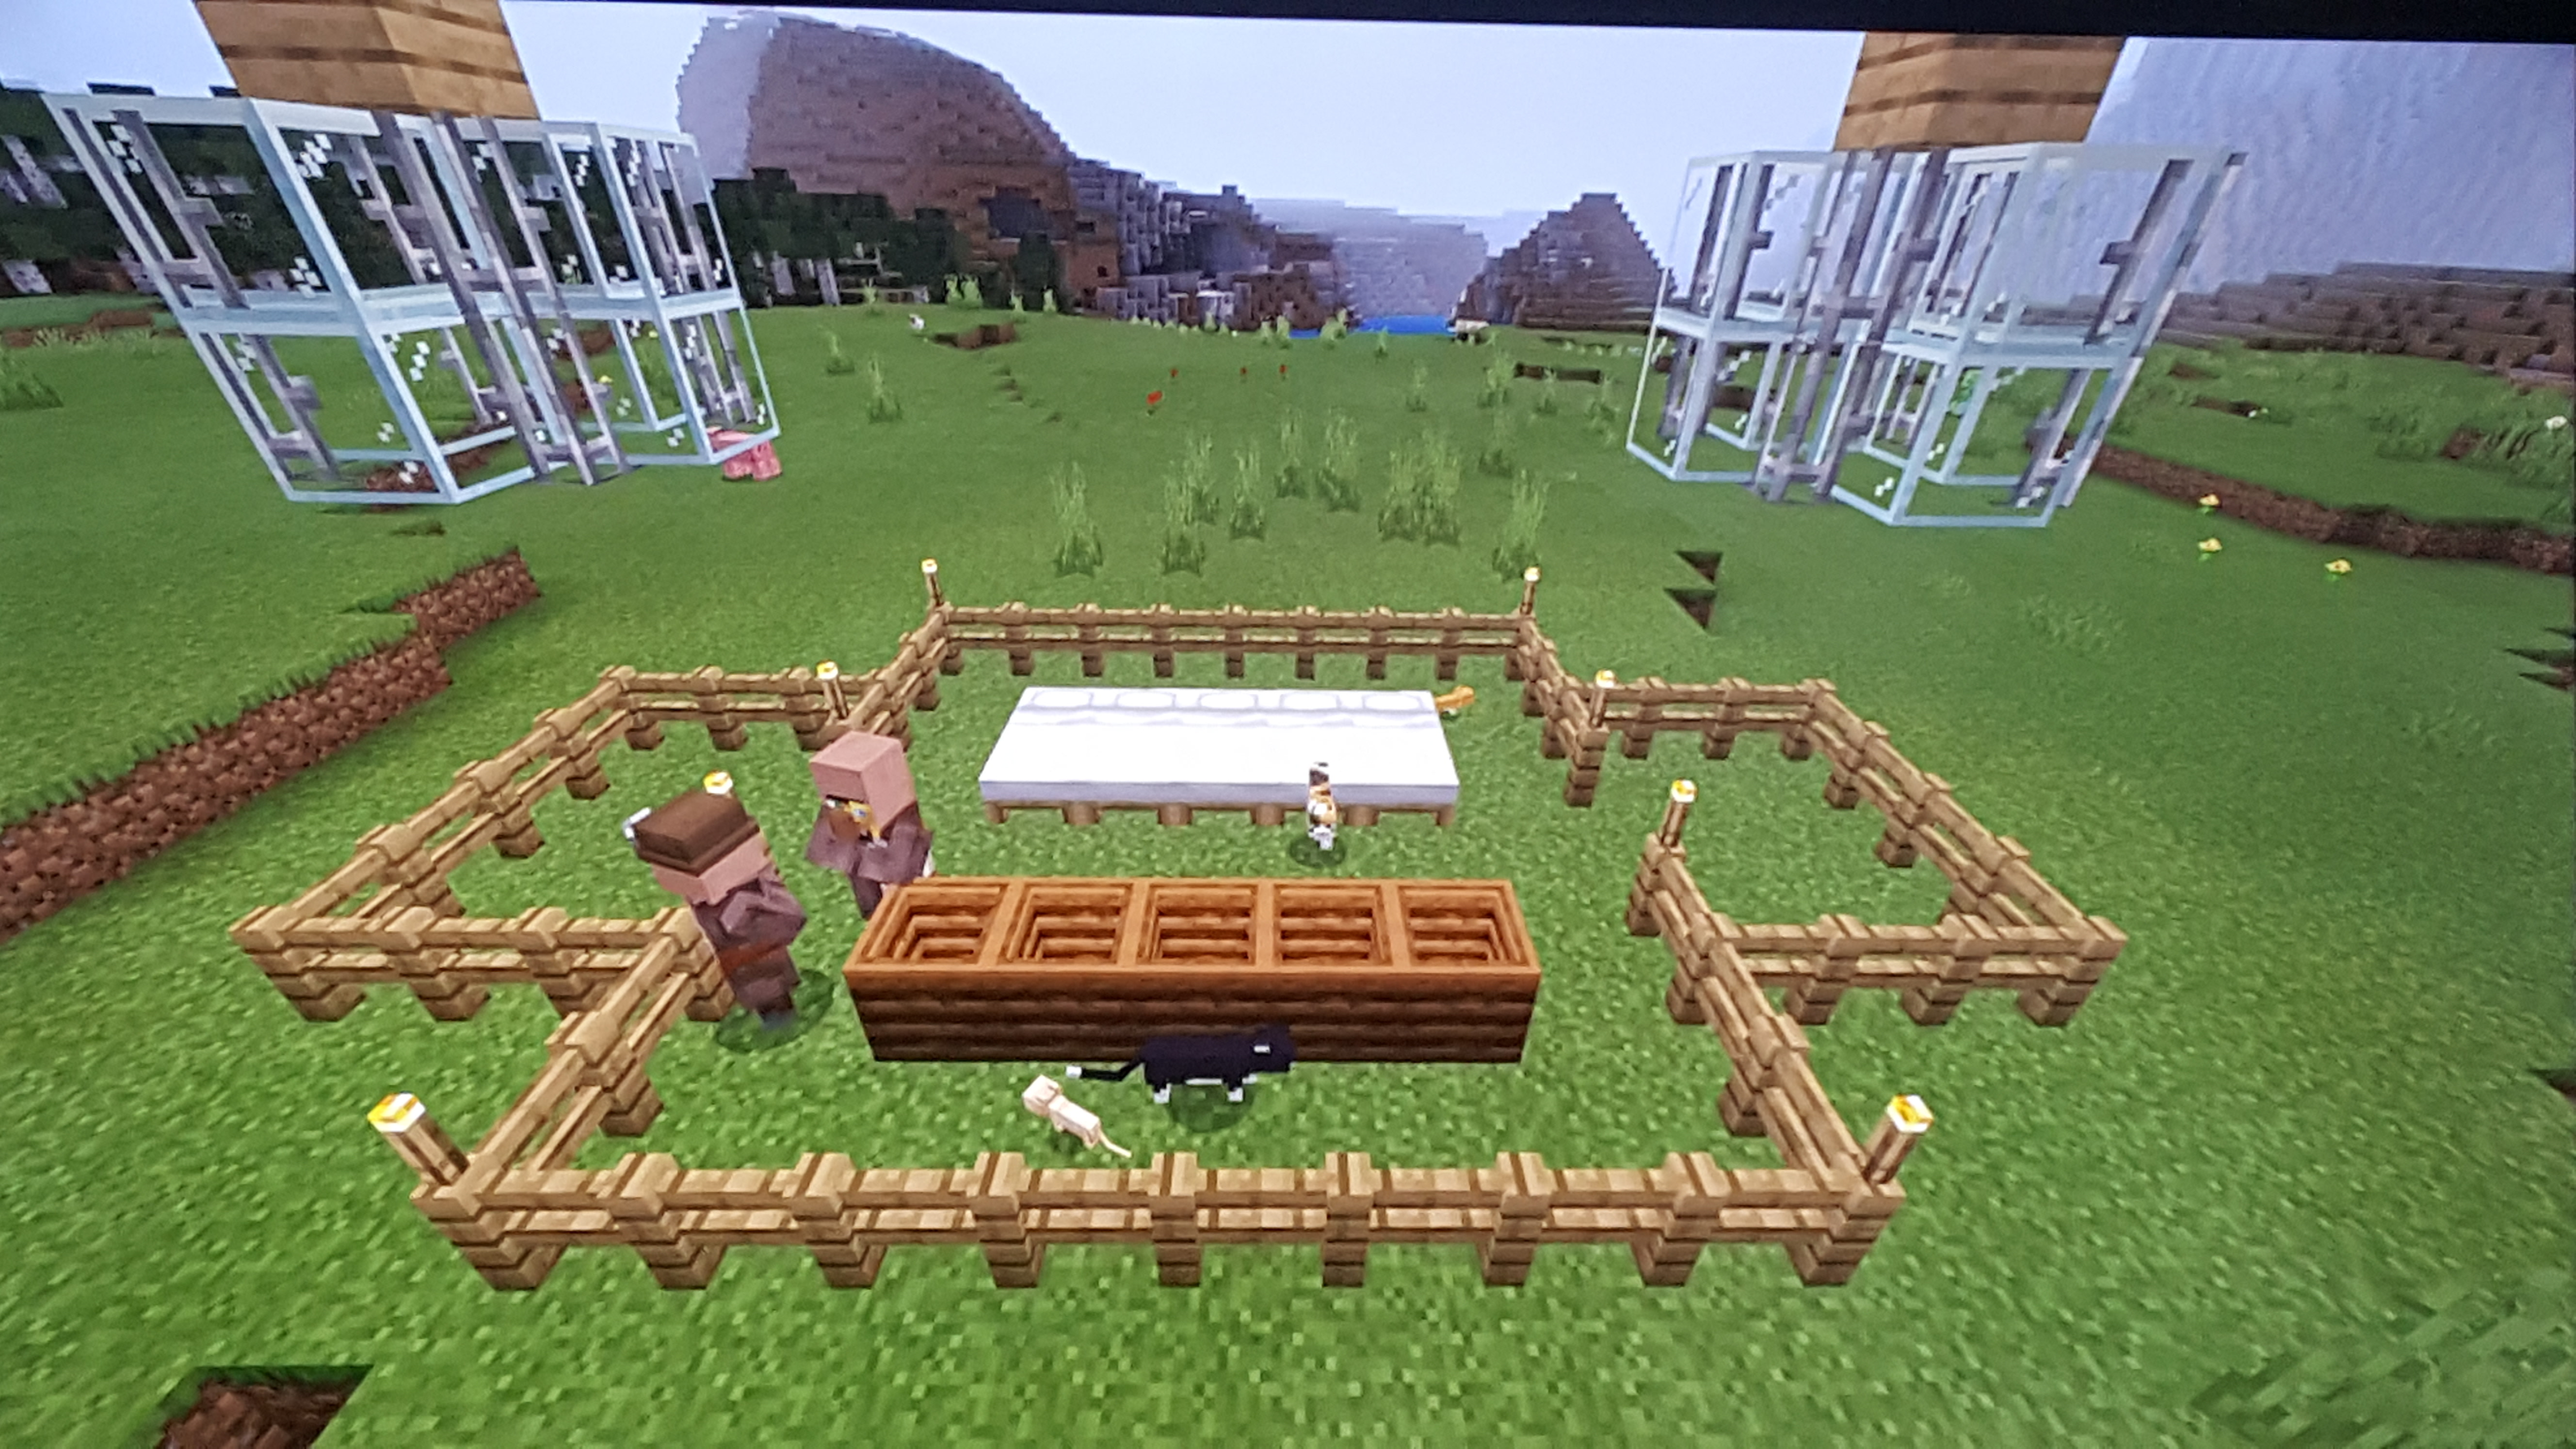 MCPE-48533] Cured Zombie Villagers never breed - Jira